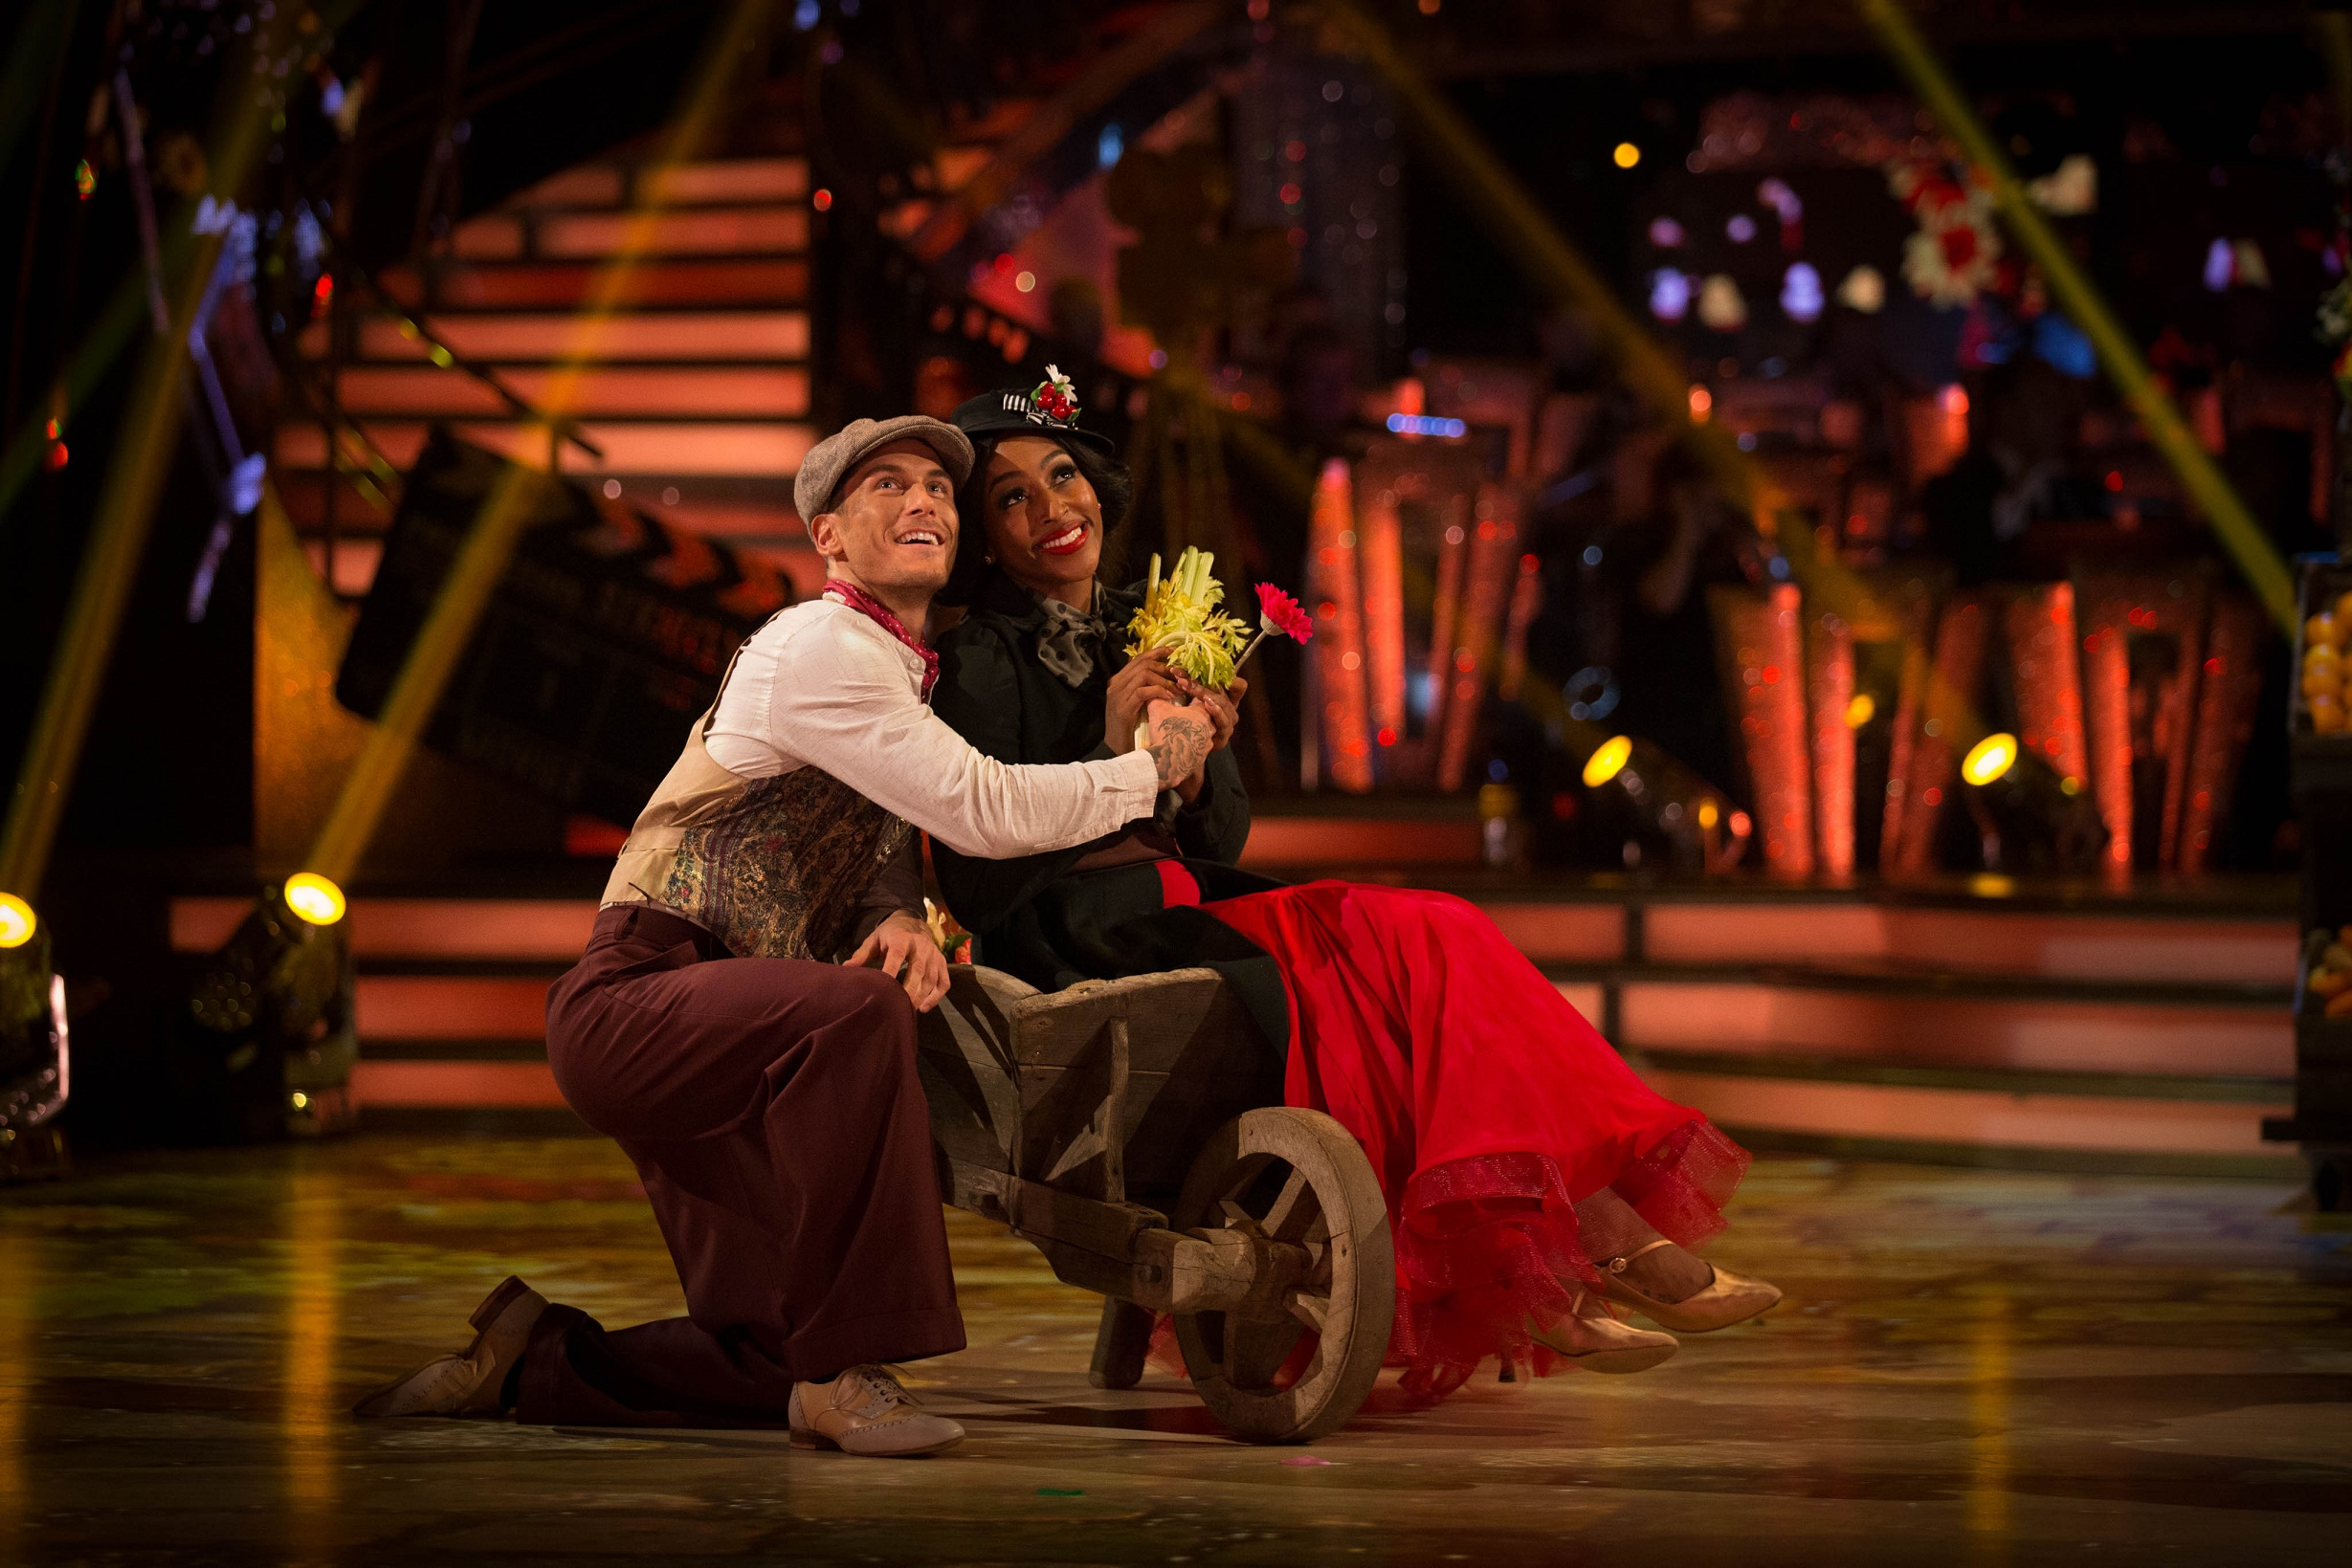 Strictly Come Dancing Songs And Dances For This Weekend